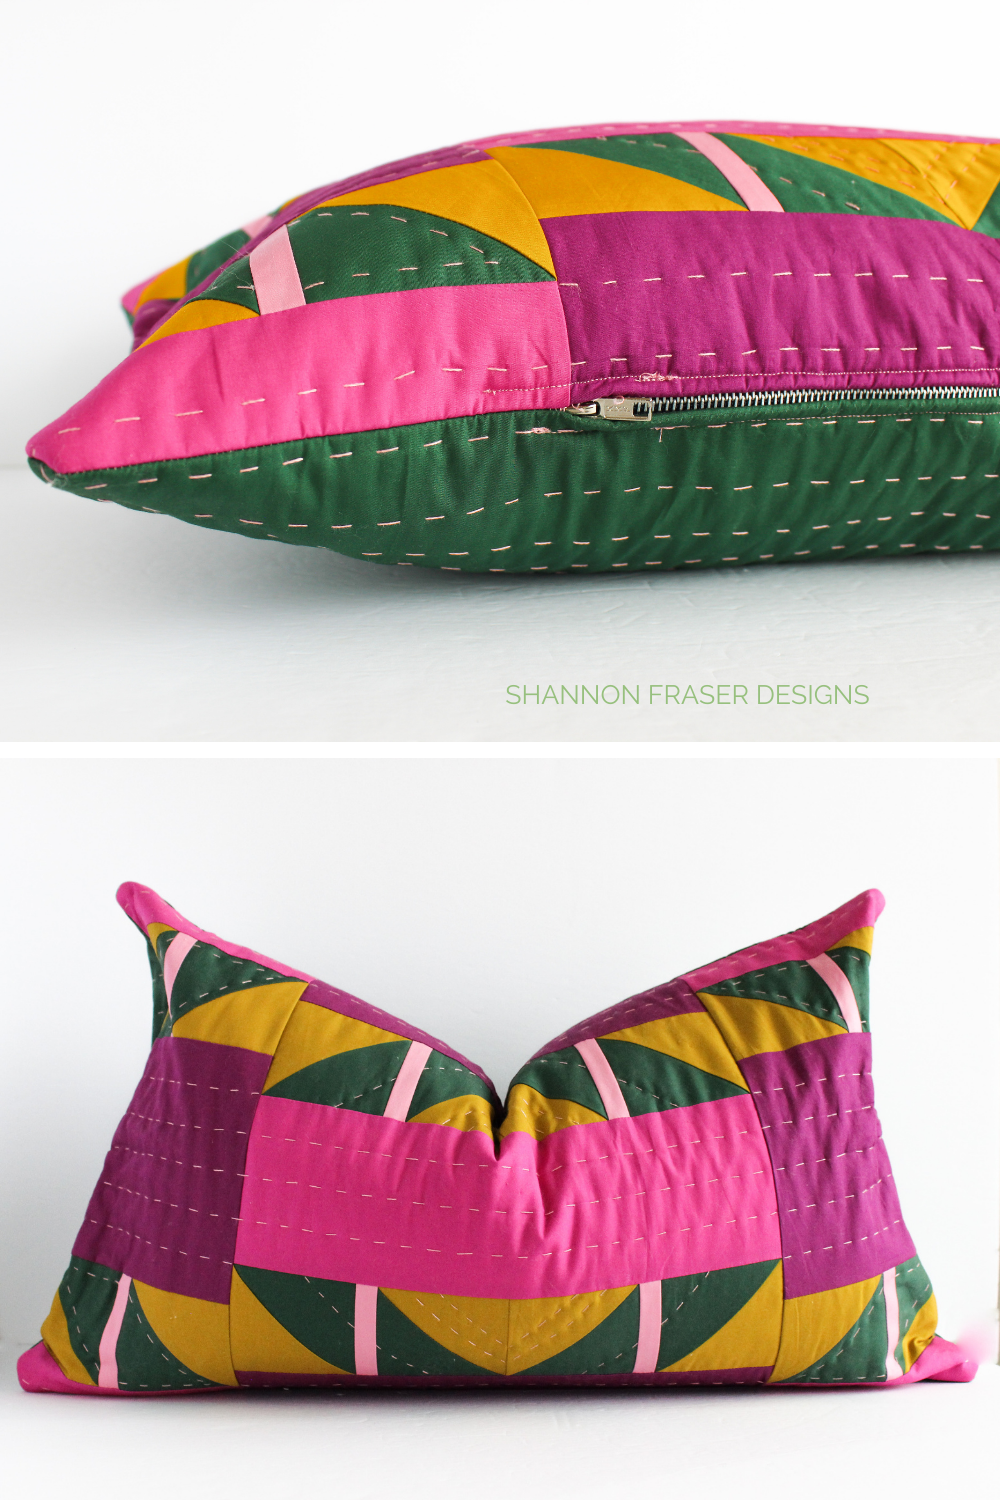 Shattered Star quilted lumbar pillow with the metal zipper installed | Sewing tutorial: how to install a metal zipper in a cushion | Shannon Fraser Designs #quiltedcushion